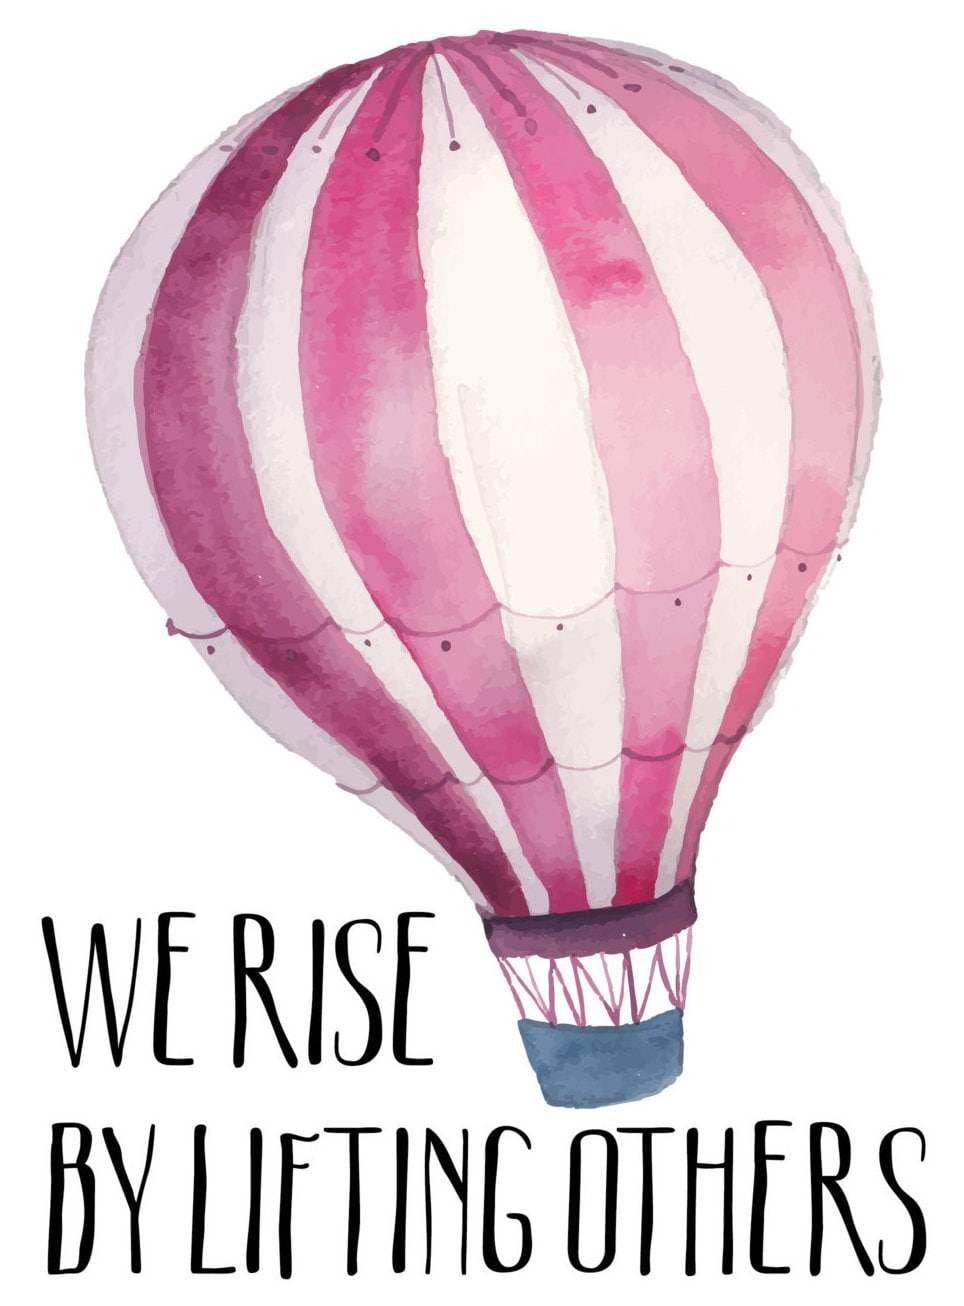 We Rise By Lifting Others Pink Hot Air Balloon Print | Etsy